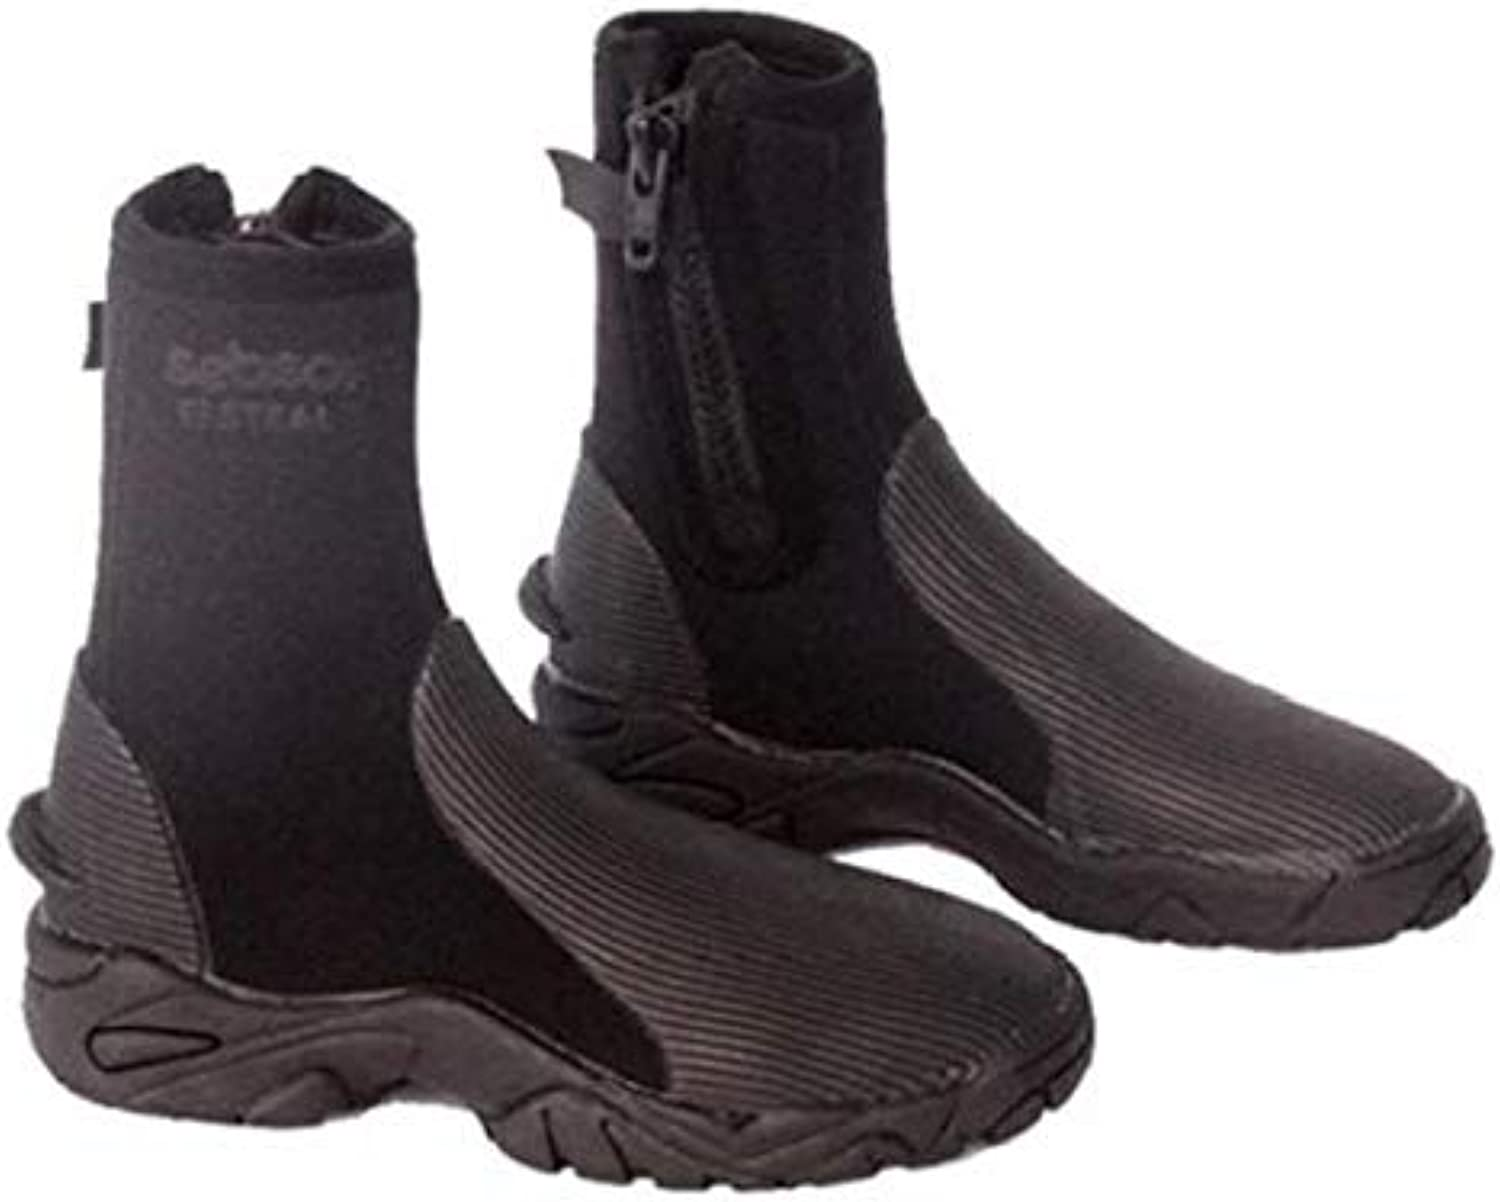 Seasoft Ti Stealth Stealth Stealth Boot - Storlek 11  12 - Great for Scuba Divers and Watersports  100% helt ny med originalkvalitet